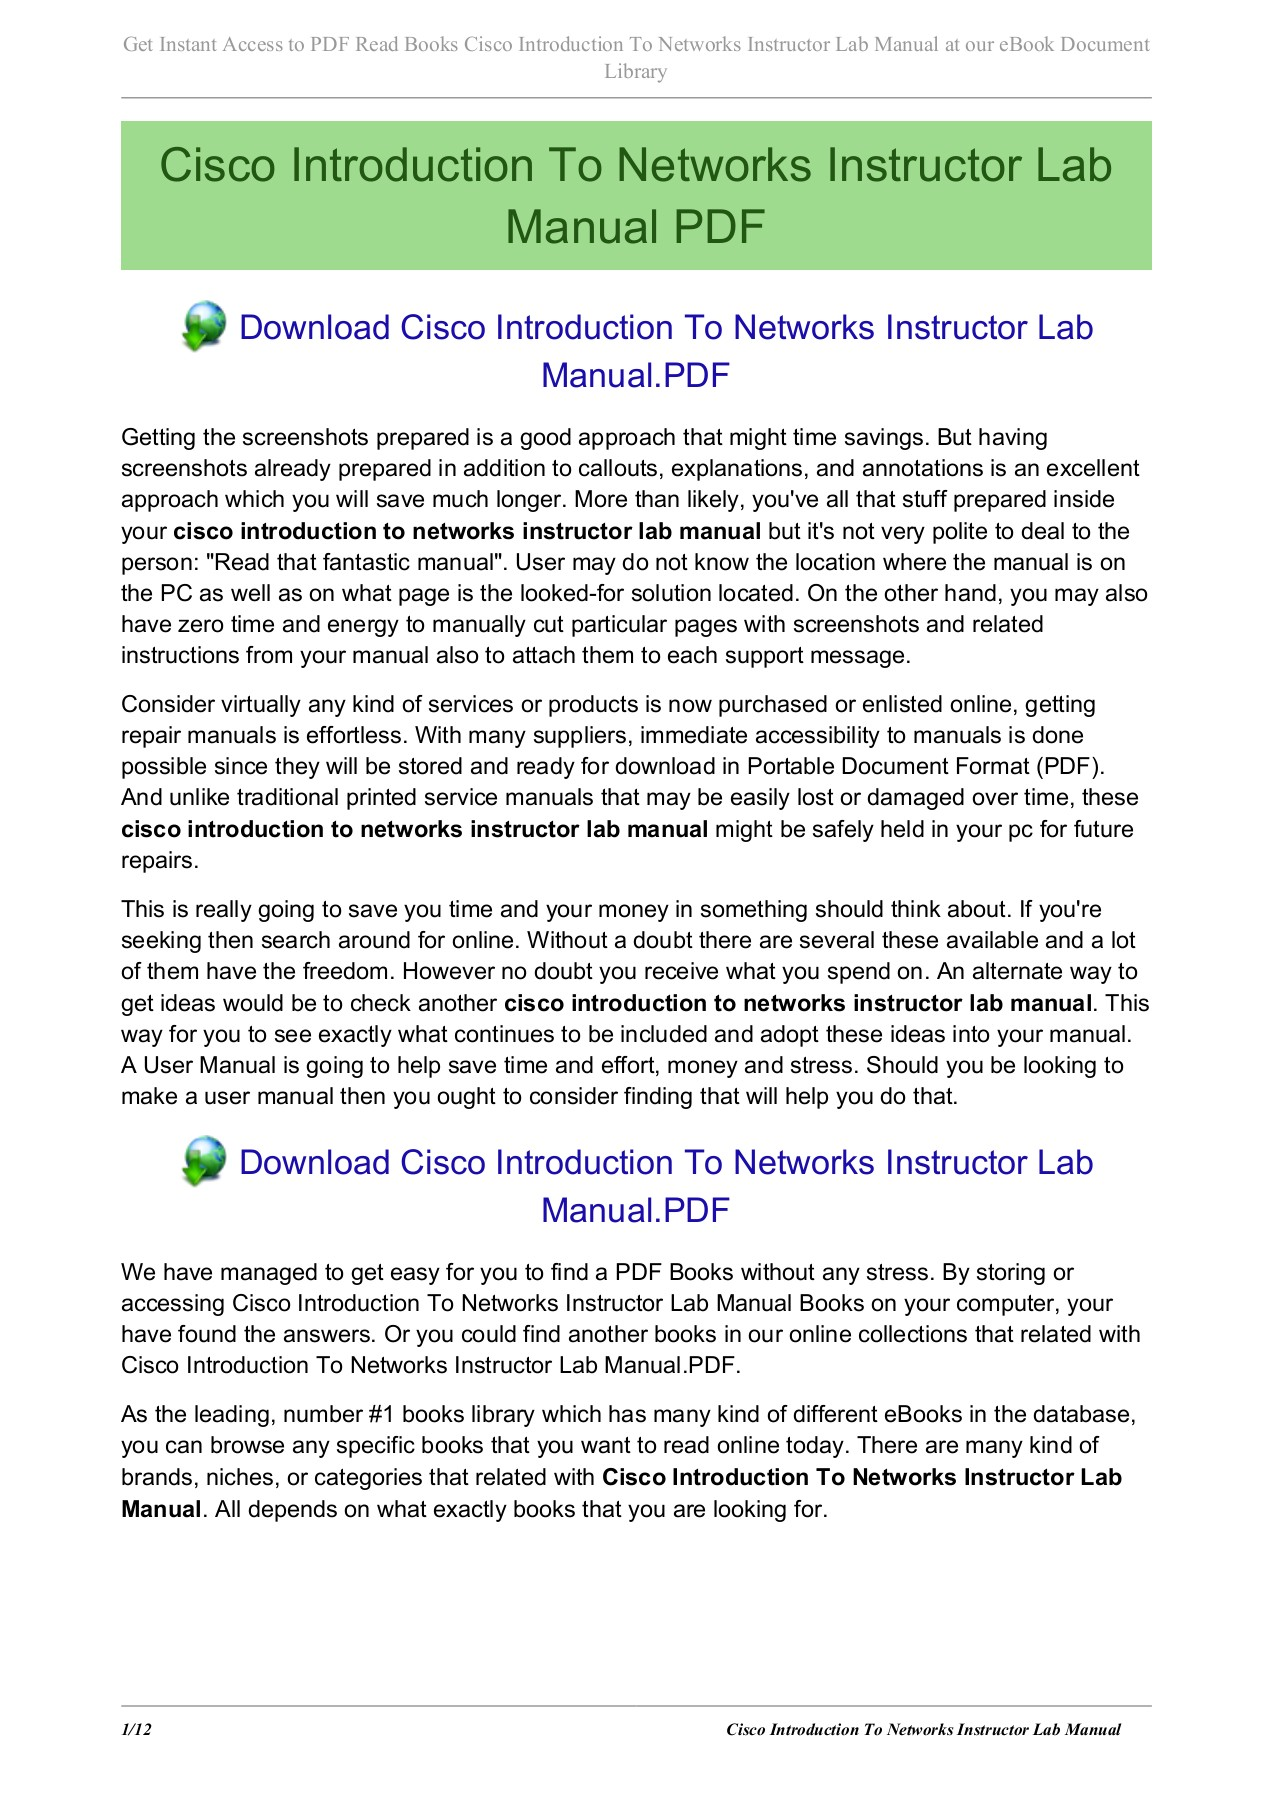 Cisco Introduction To Networks Instructor Lab Manual